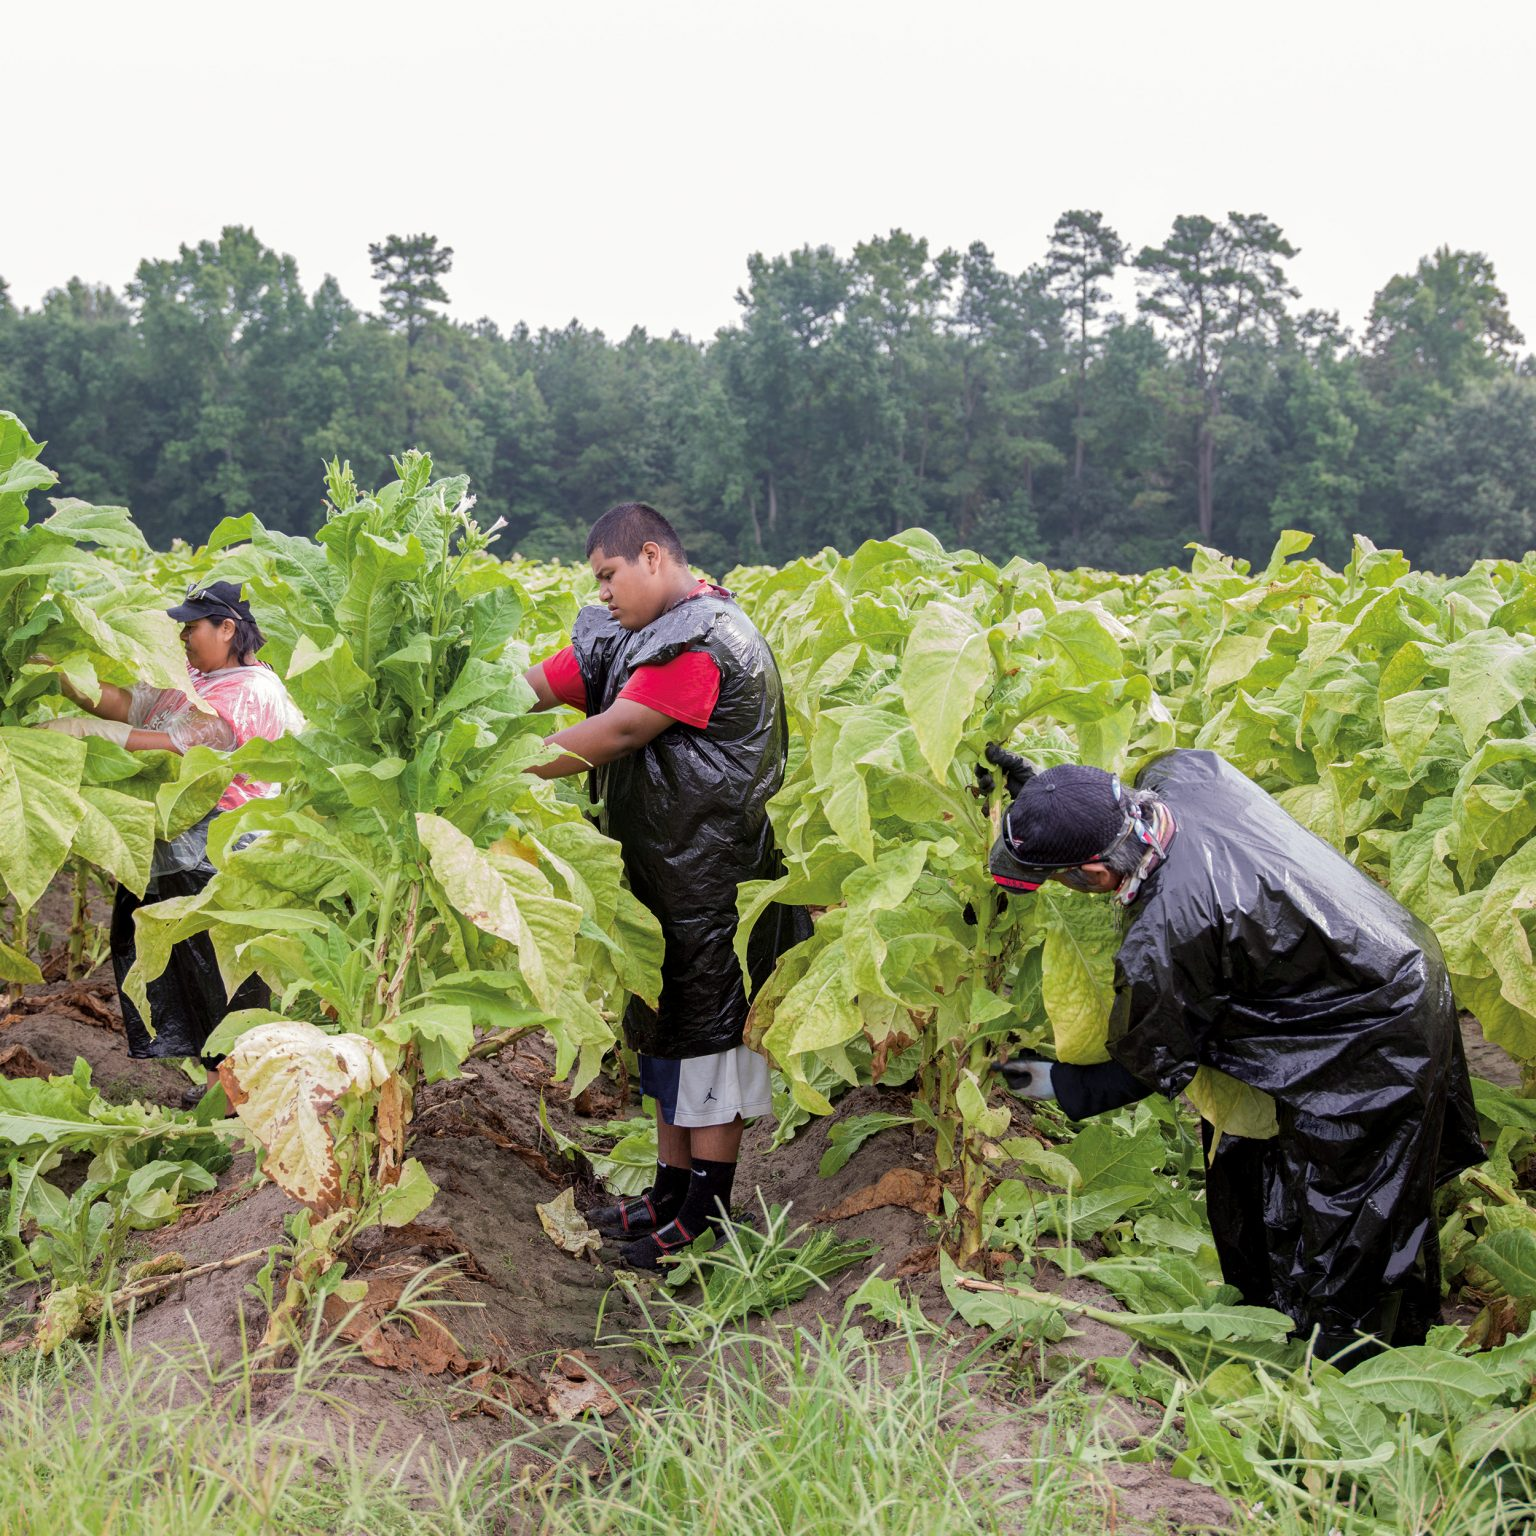 """Near Goldsboro, N.C., USA. MIguel, 14 years old, in a tobacco field on a early Sunday morning. He works 12 to 13 hours per day, every day, earning 7,85 USD per hour. Both his parents work in tobacco. He works only in the summer in order to help his parents sending him and his two sisters to school. Advocates who study migrant farm worker families estimate that as many as a half million of children currently work in US farms. Many of these children are working legally under a loophole in U.S. child labor laws. Federal law provides no minimum age for work on small farms with parental permission, and children over 12 may work for hire outside school hours. Under federal law, child farmworkers can also do jobs at 16 that the U.S. Department of Labor considers  """"particularly hazardous"""" for children. In addition, legislation does not take into account the risks posed specifically by tobacco farming. Handling tobacco leaves causes the transderming absorption of high doses of nicotine, an equivalent of 12 cigarettes a day, 36 on a humid day, causing Green Tobacco Sickness. Children, with their small body mass, present lower intoxication threshold for both nicotine and chemicals used in tobacco farming."""